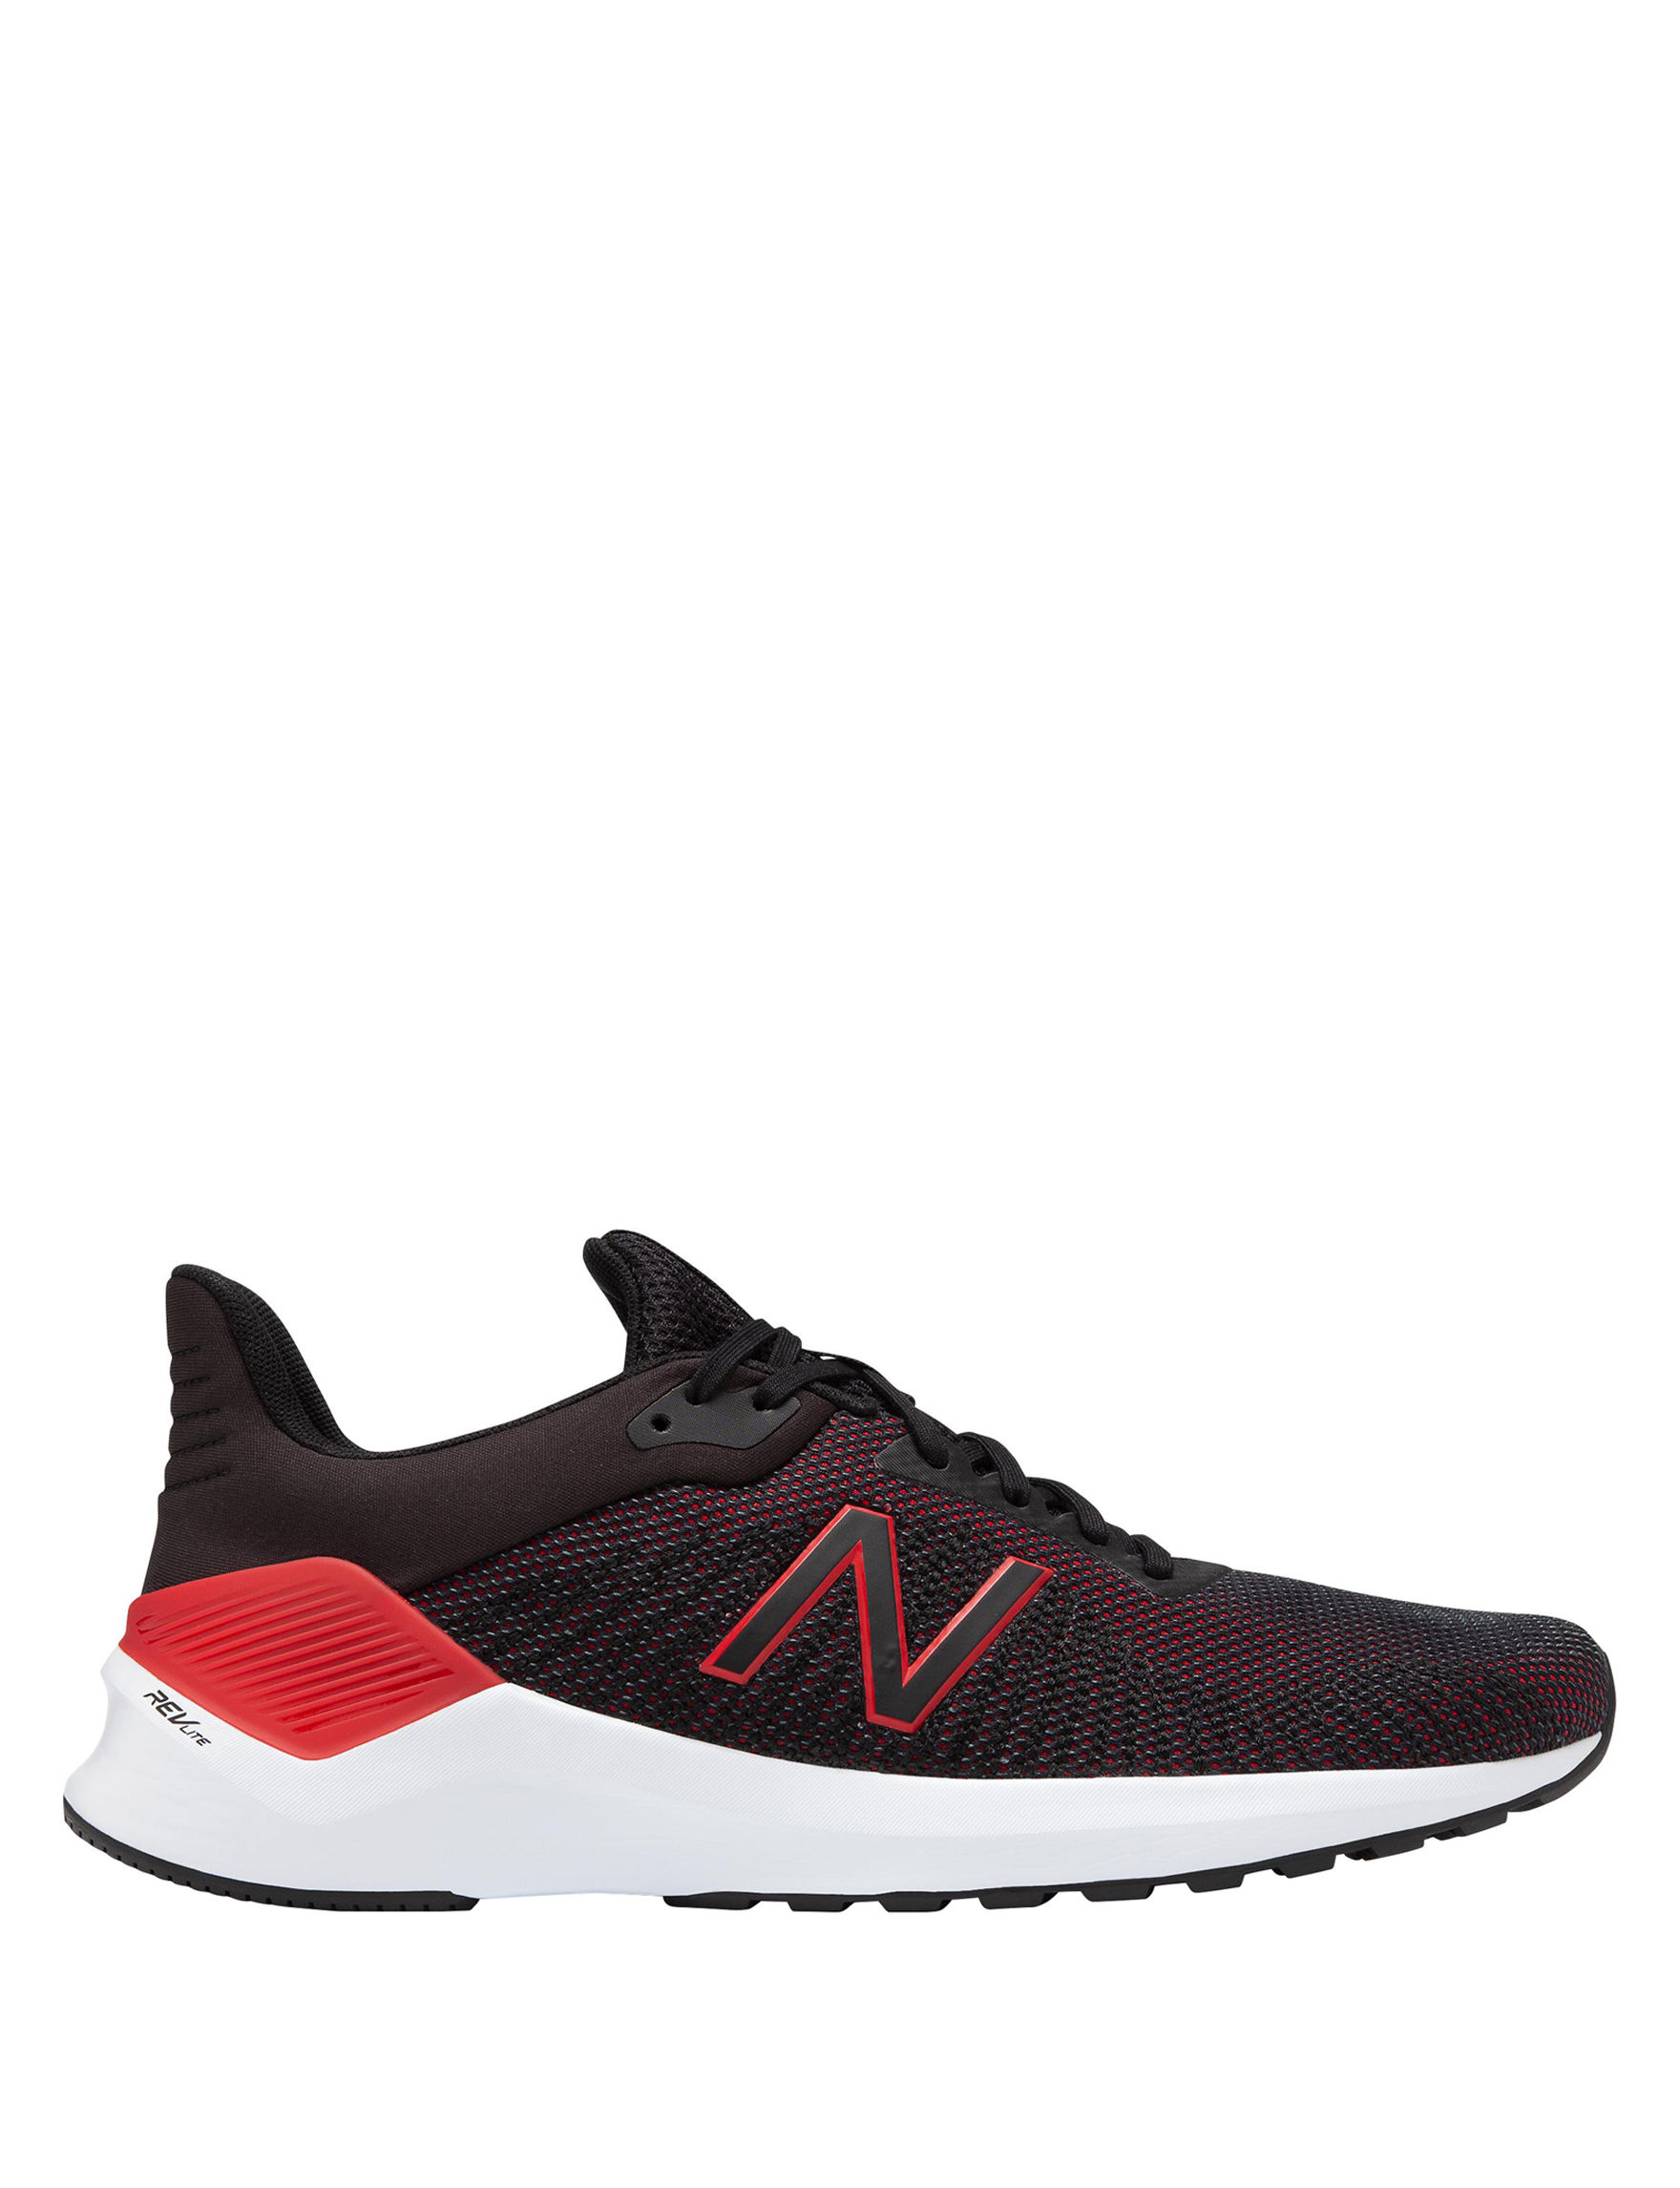 New Balance Black / Red